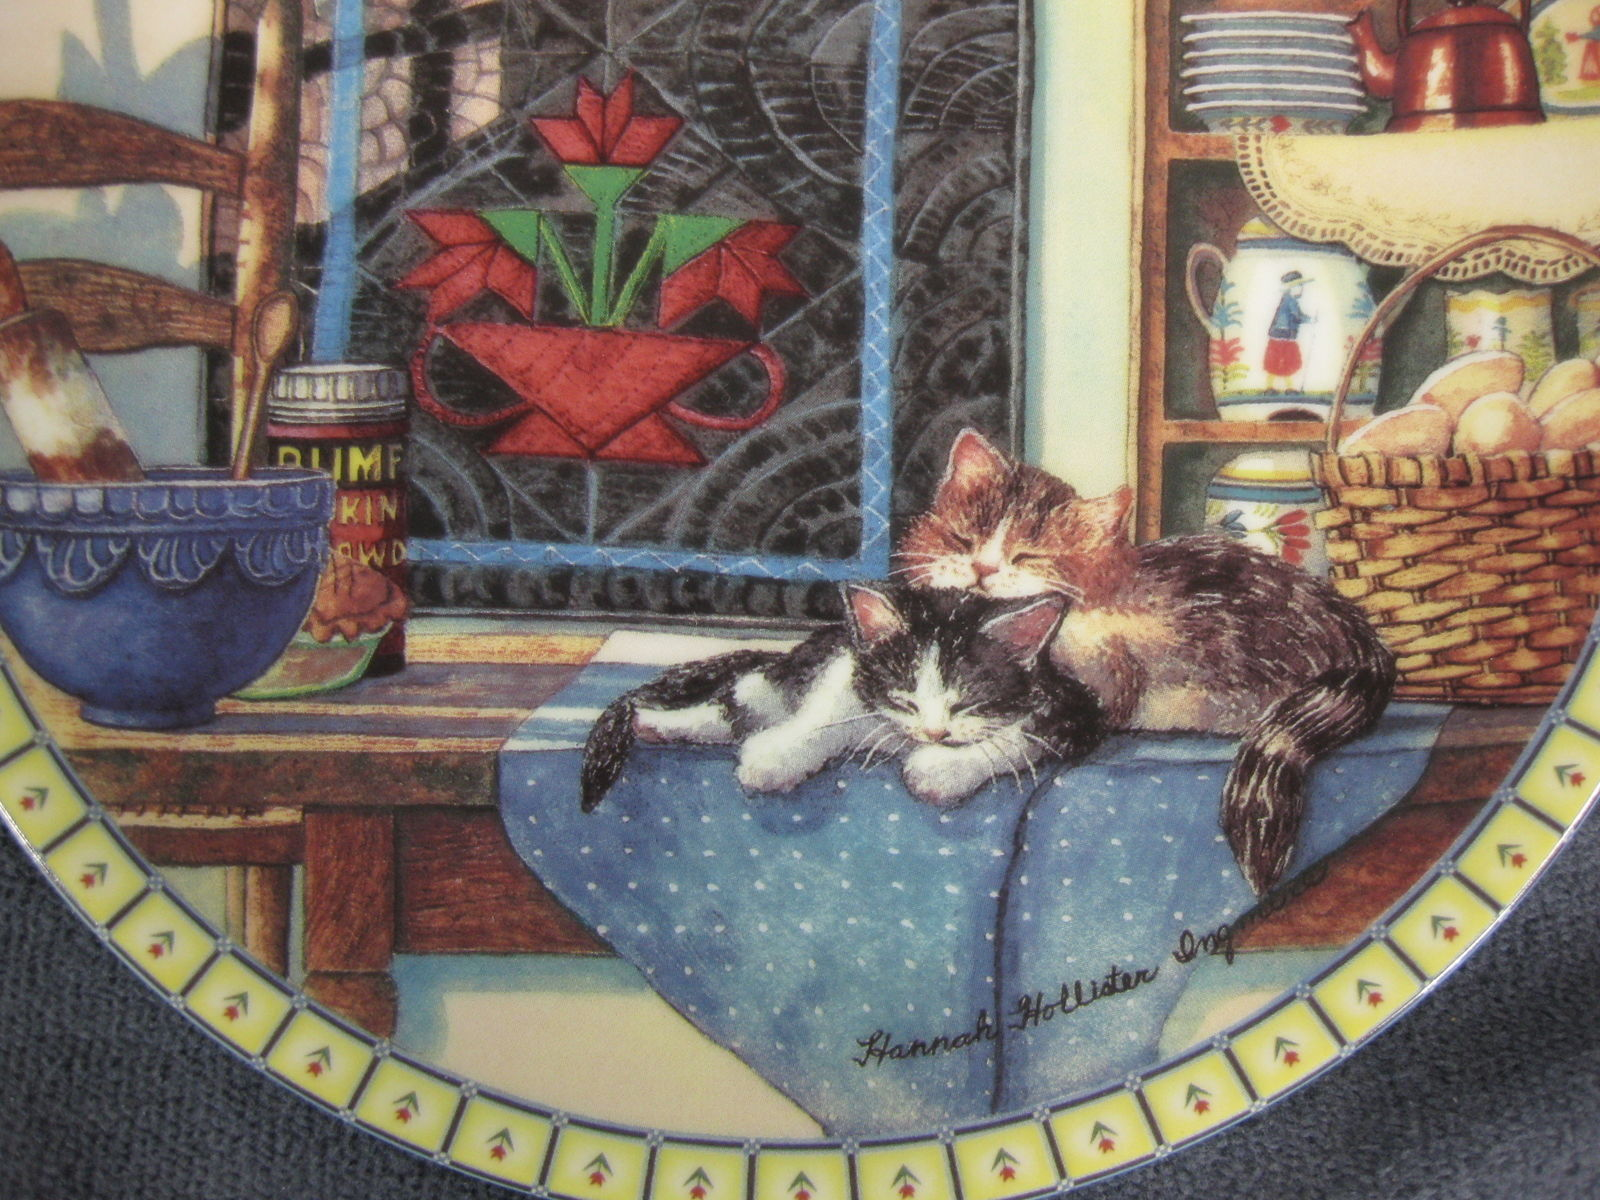 LAZY MORNING Cozy Country Corners Collector Plate Hannah Hollister Ingmire 1990